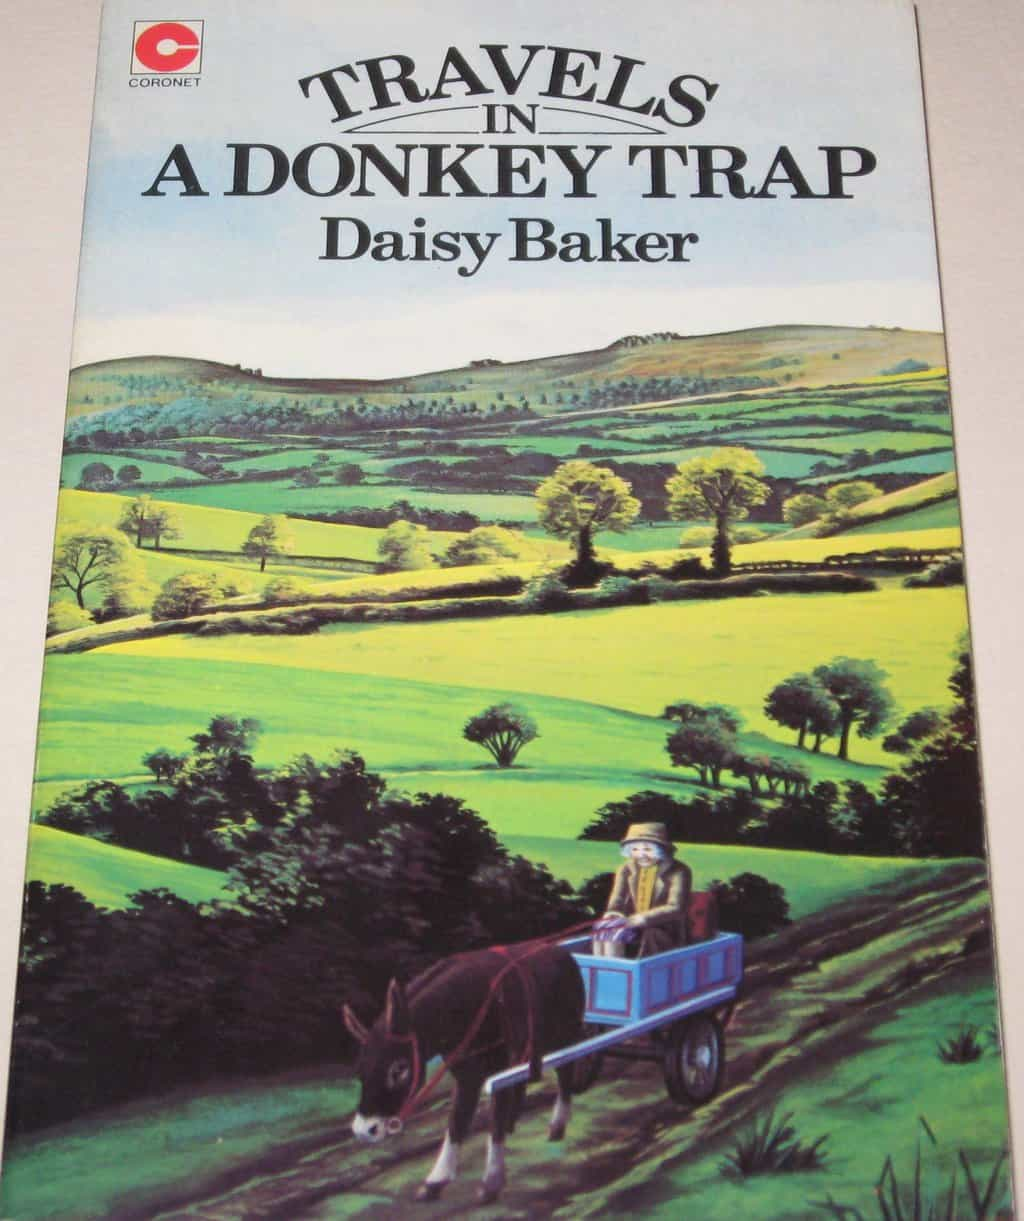 Travels in a Donkey Trap by Daisy Baker: